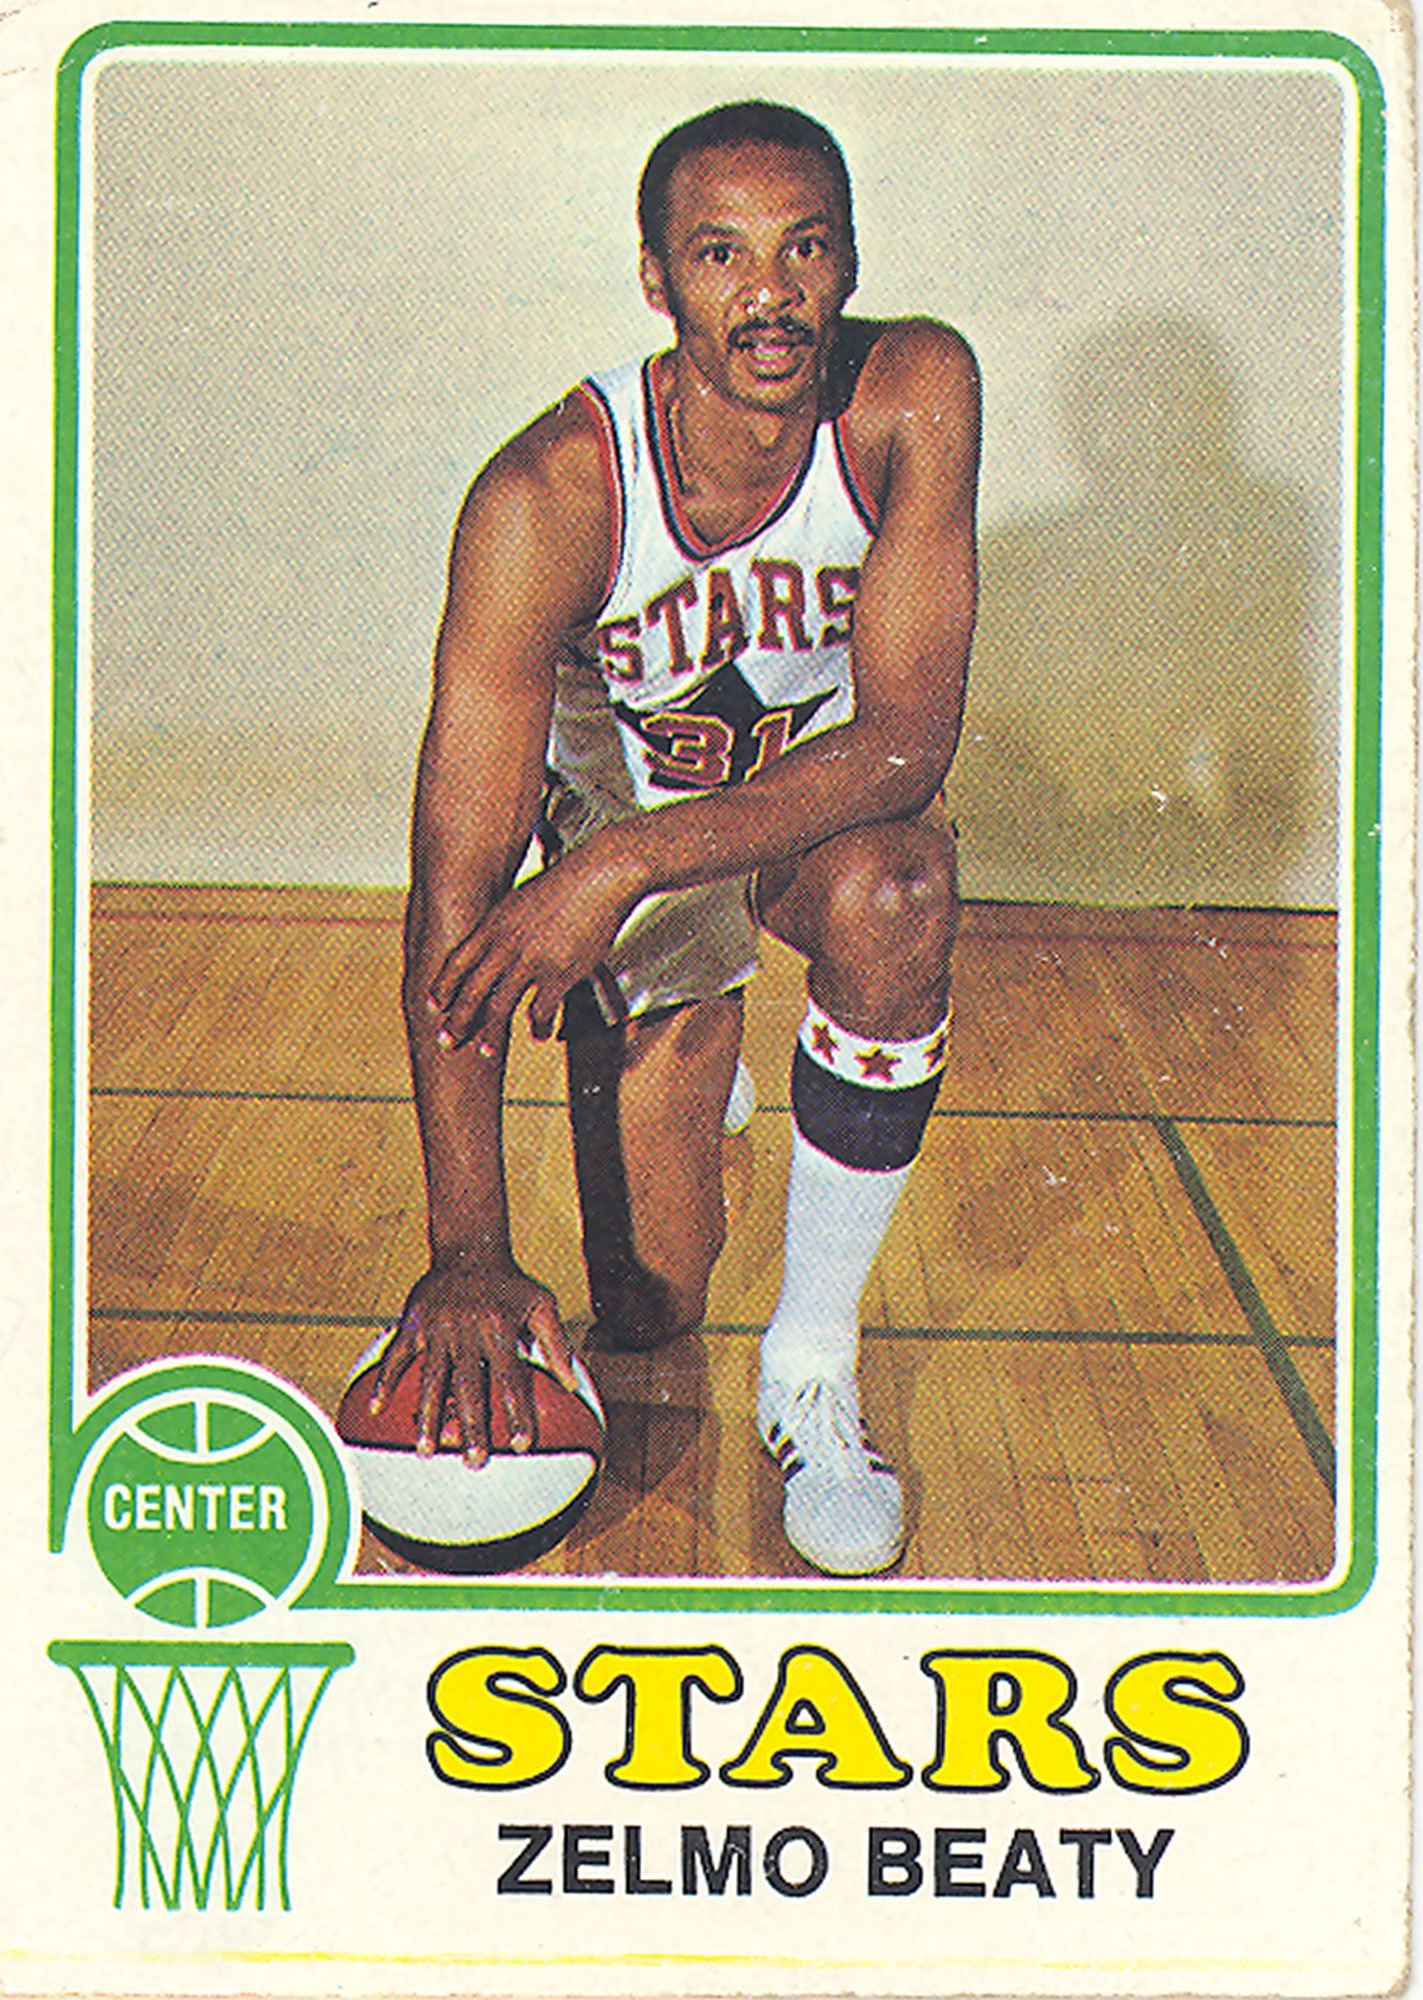 Zelmo Beaty Basketball Card